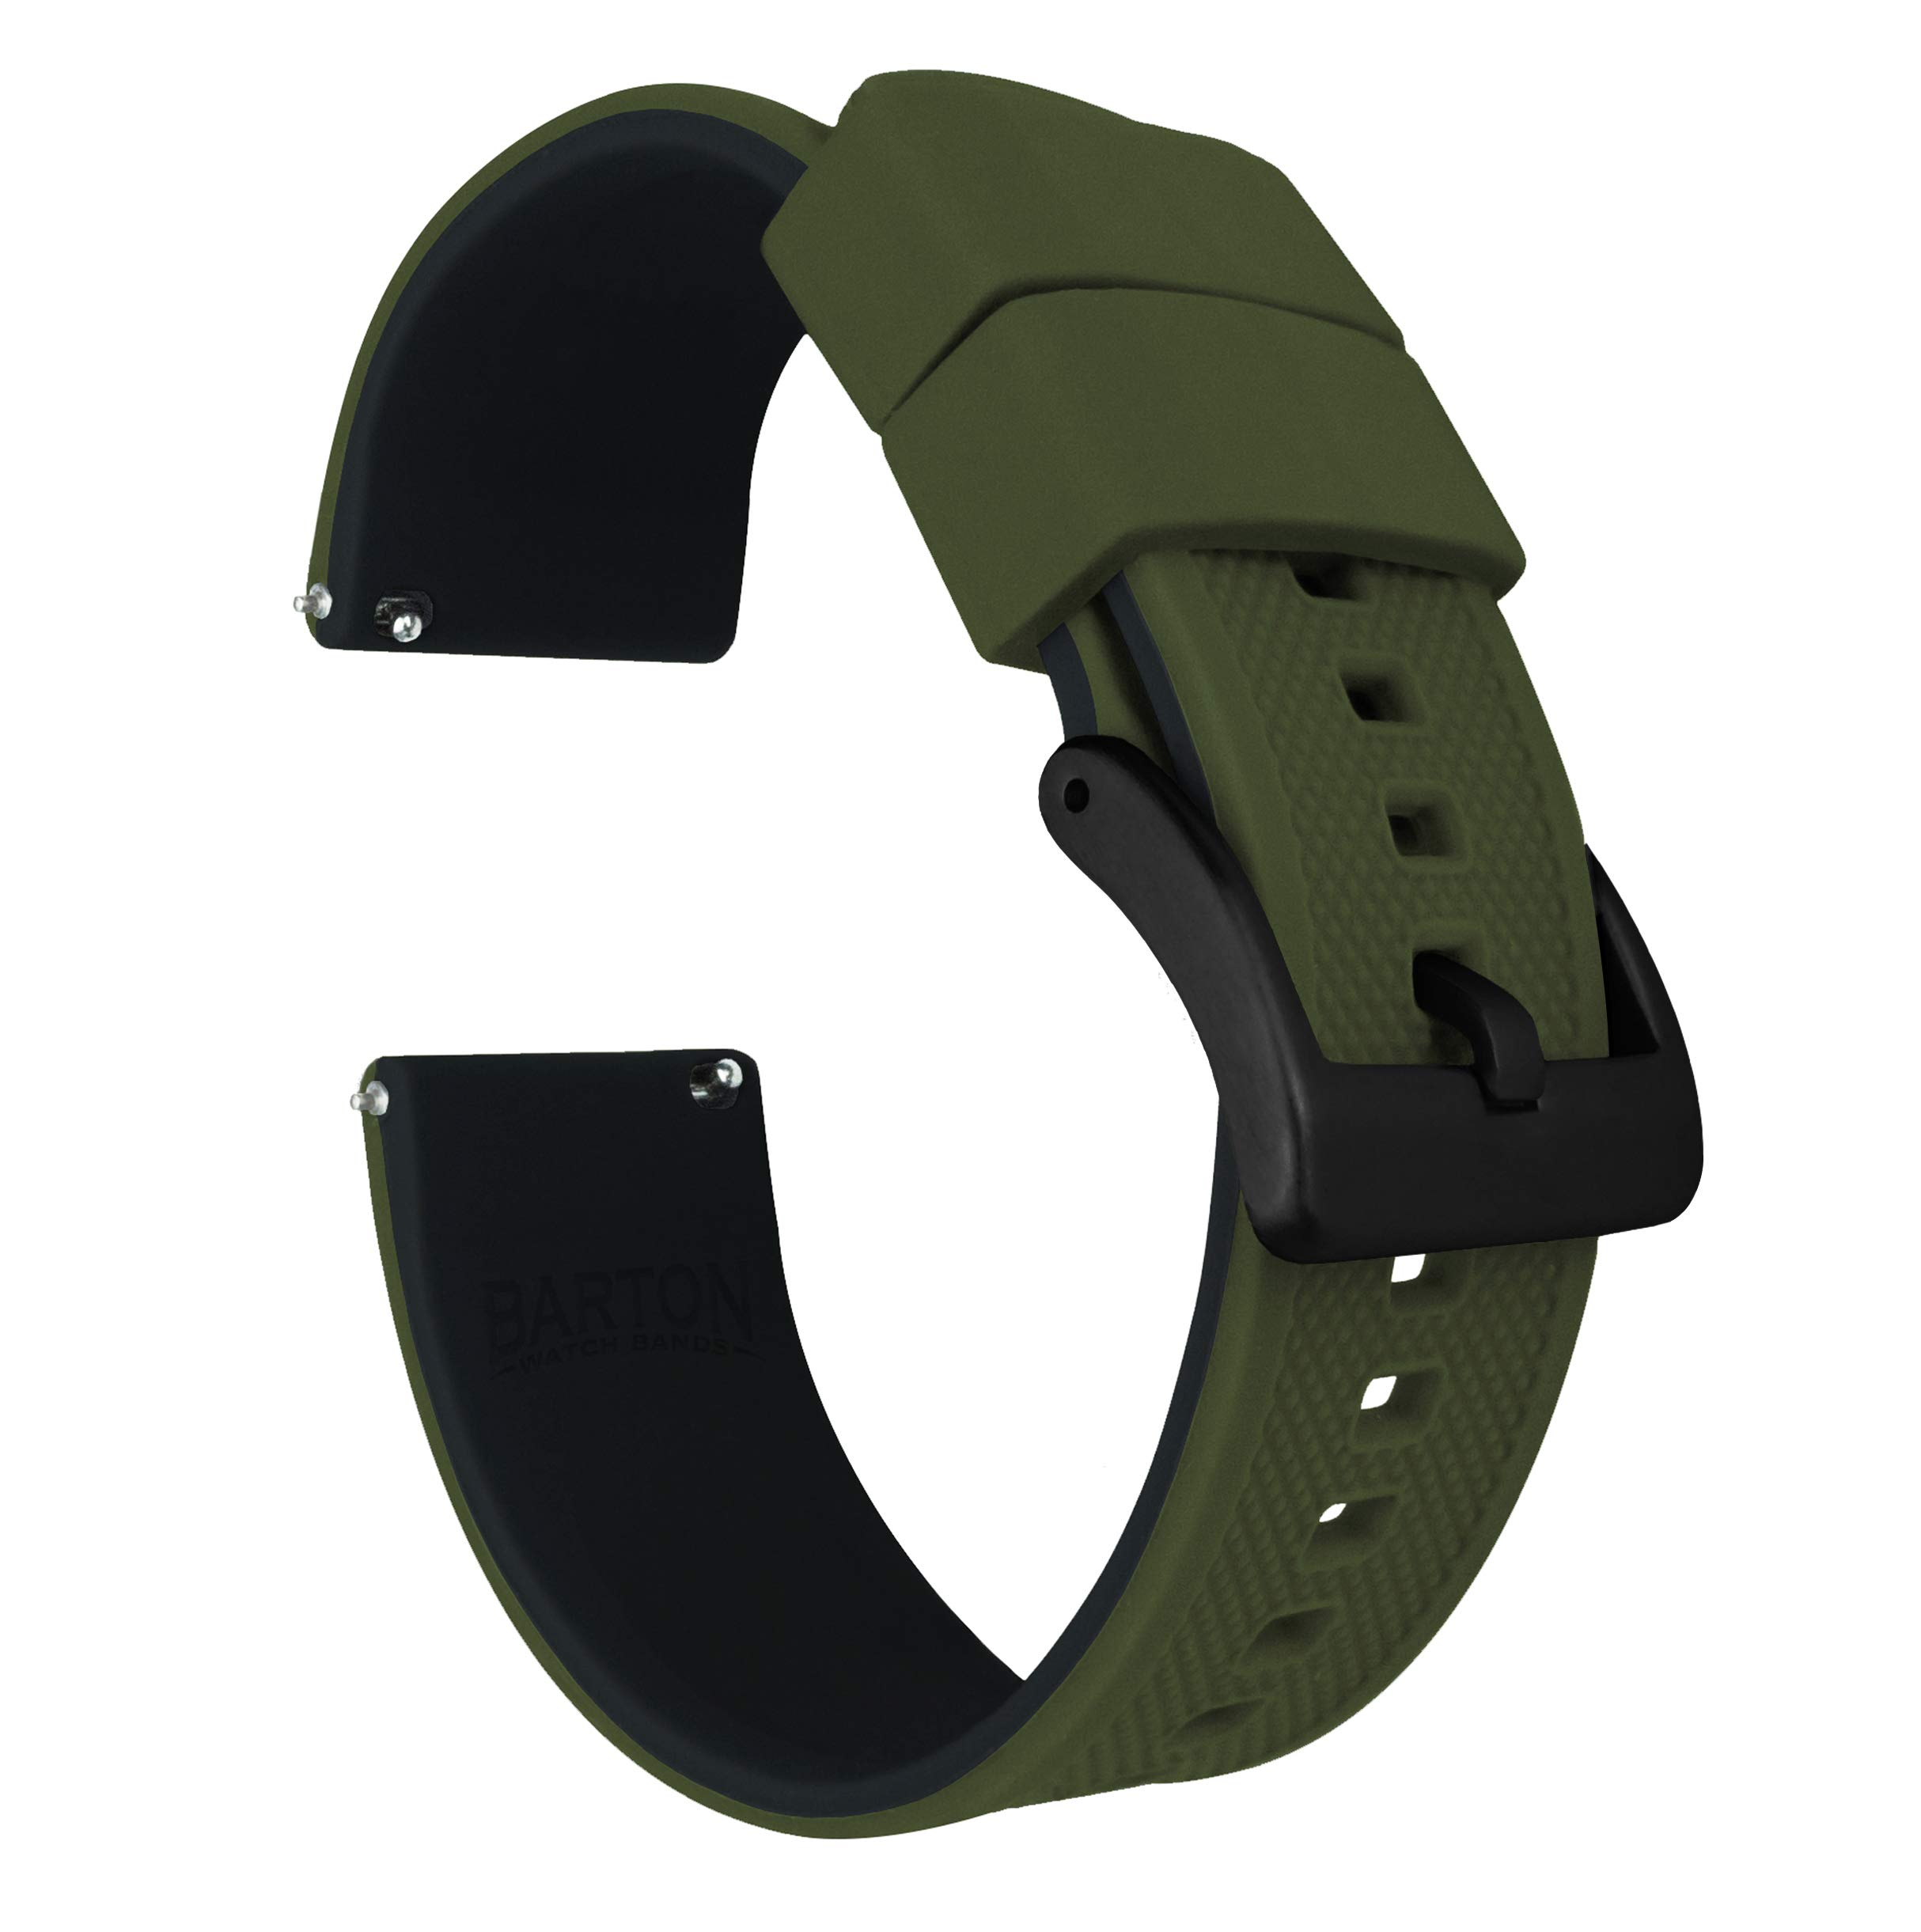 Barton Elite Silicone Watch Bands - Black Buckle Quick Release - Choose Color - 18mm 19mm 20mm 21mm 22mm 23mm & 24mm Watch Straps